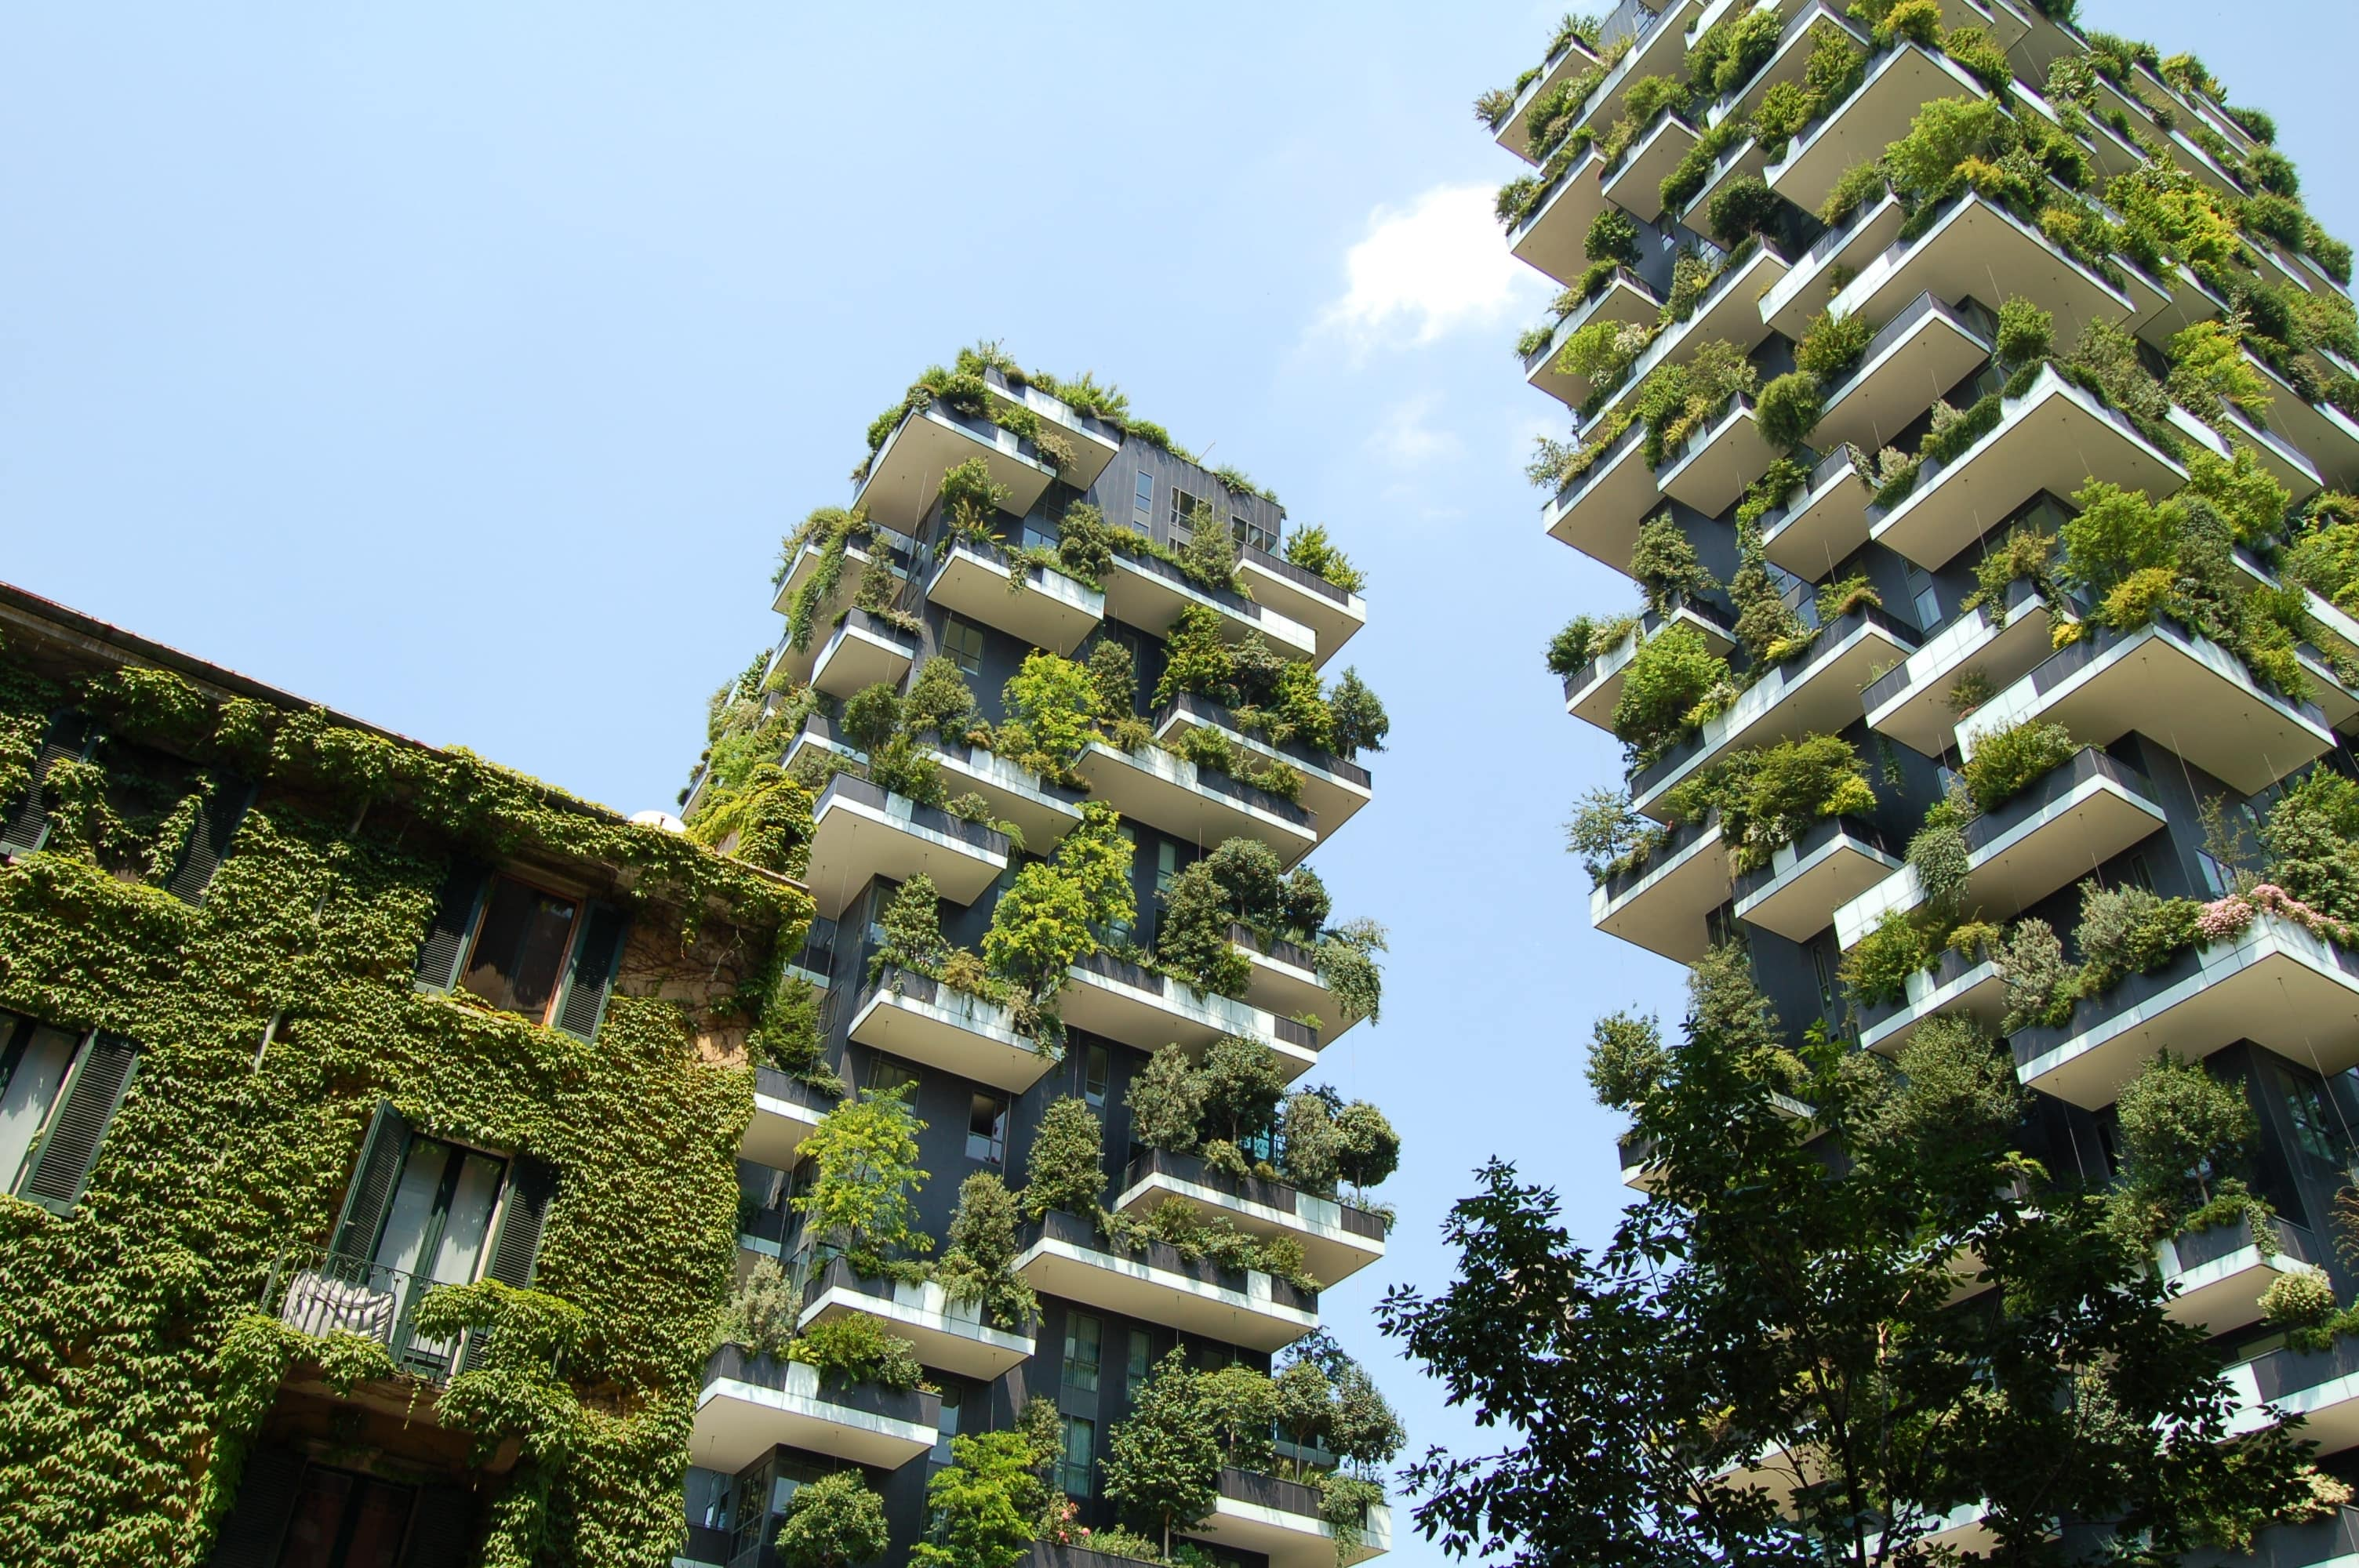 green building with foliage